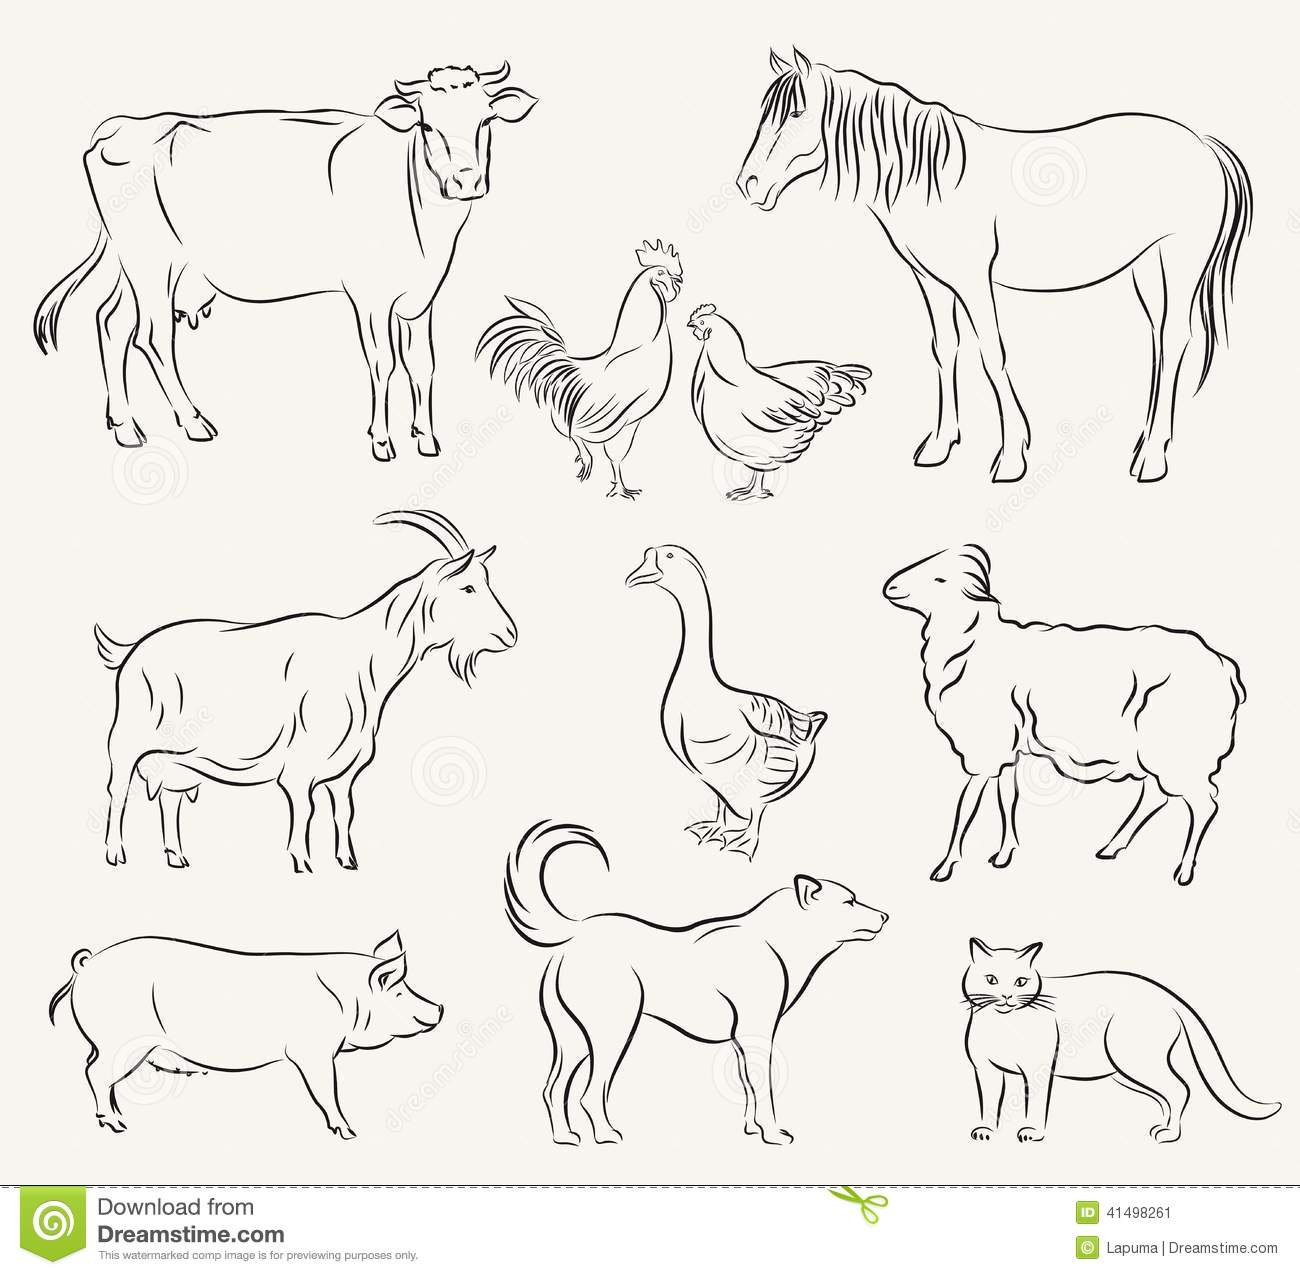 Farm animals. set of vector sketches on a white background.